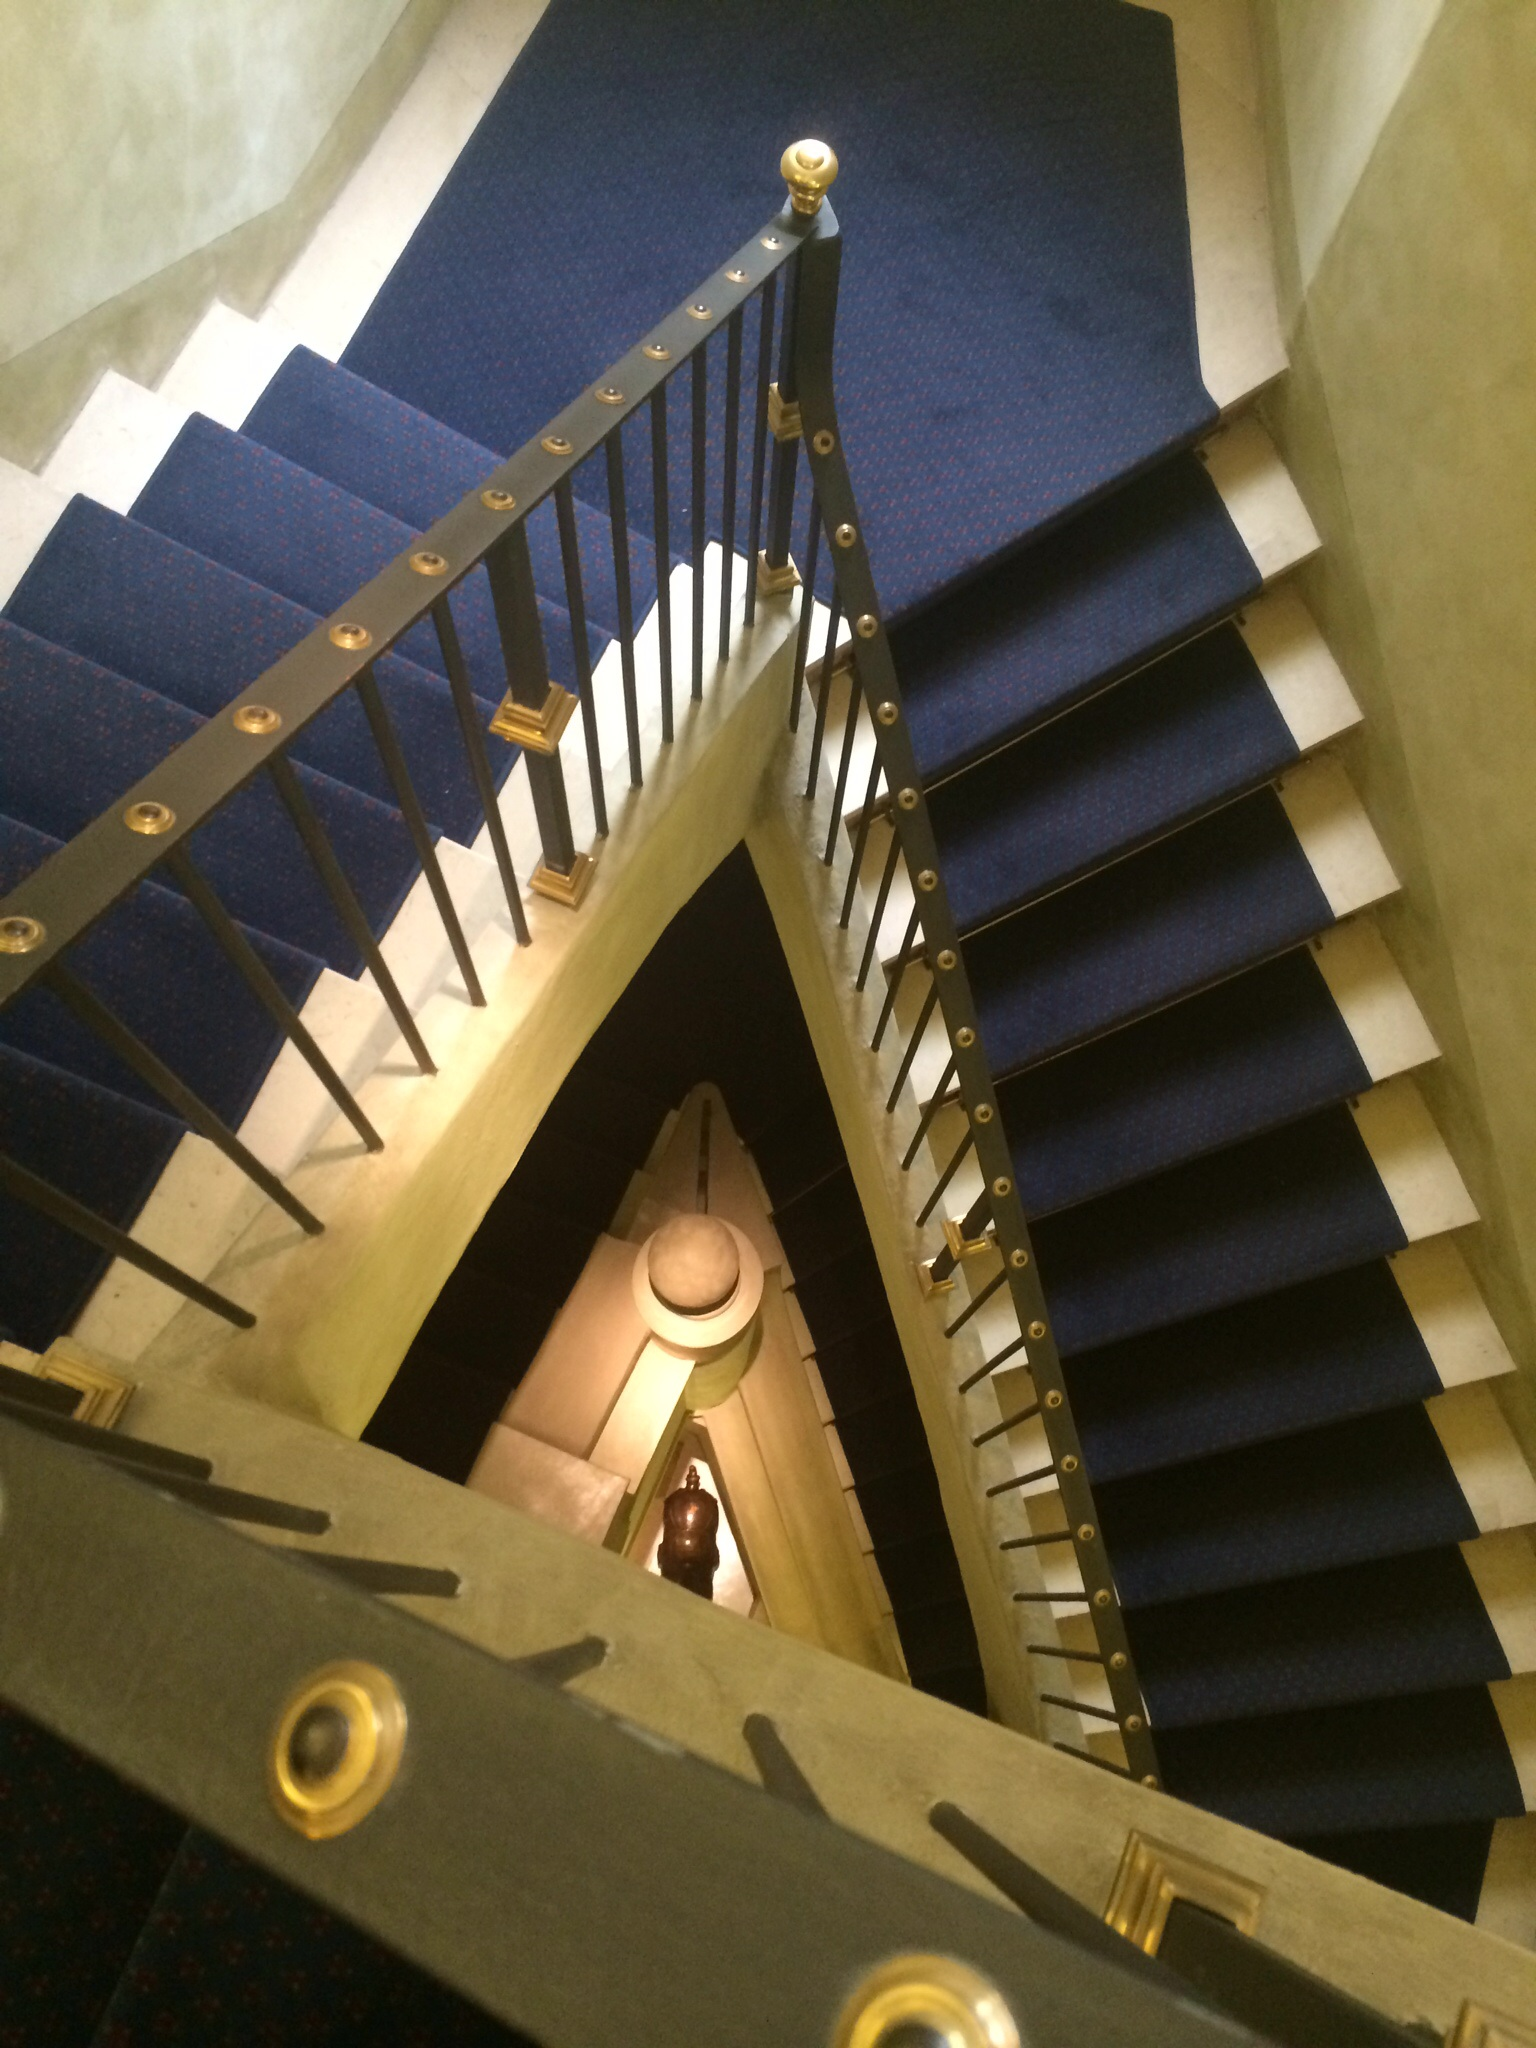 The hotel stairs.